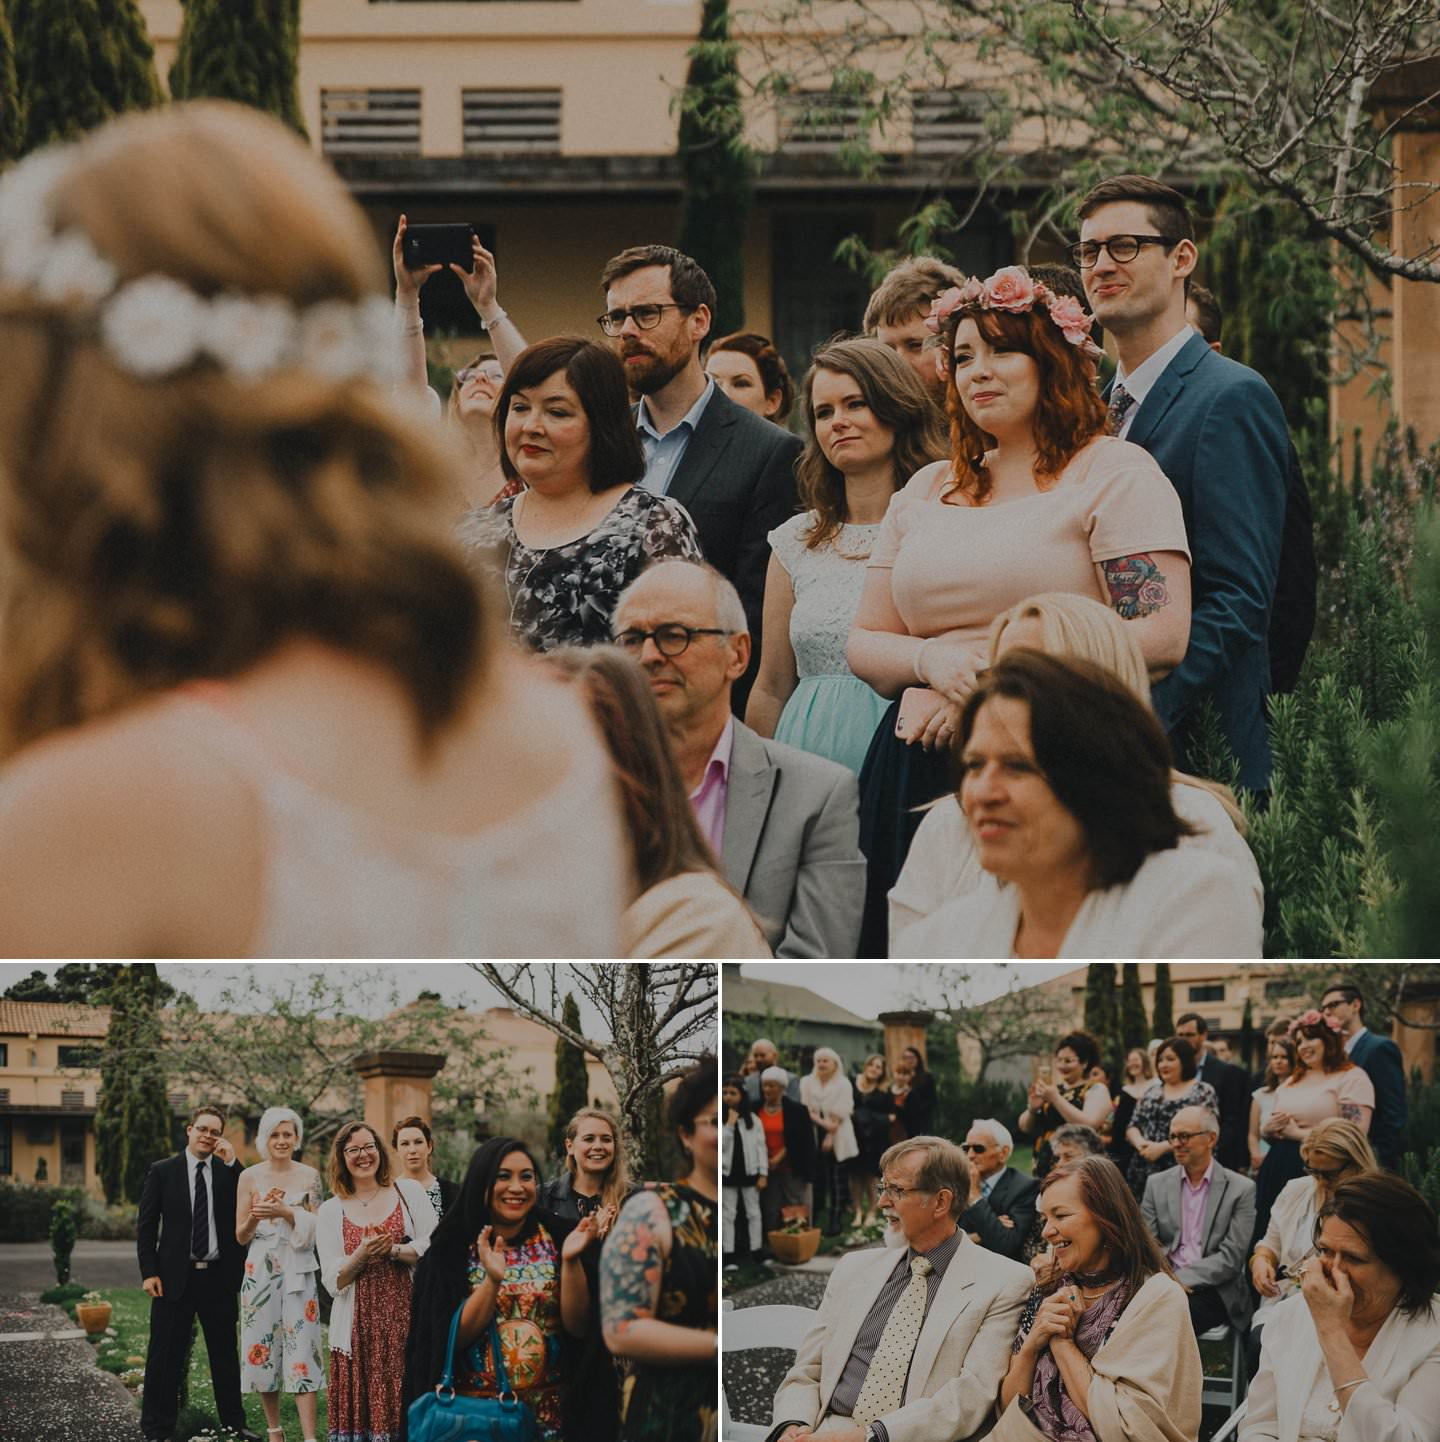 Emotional pictures at wedding ceremony